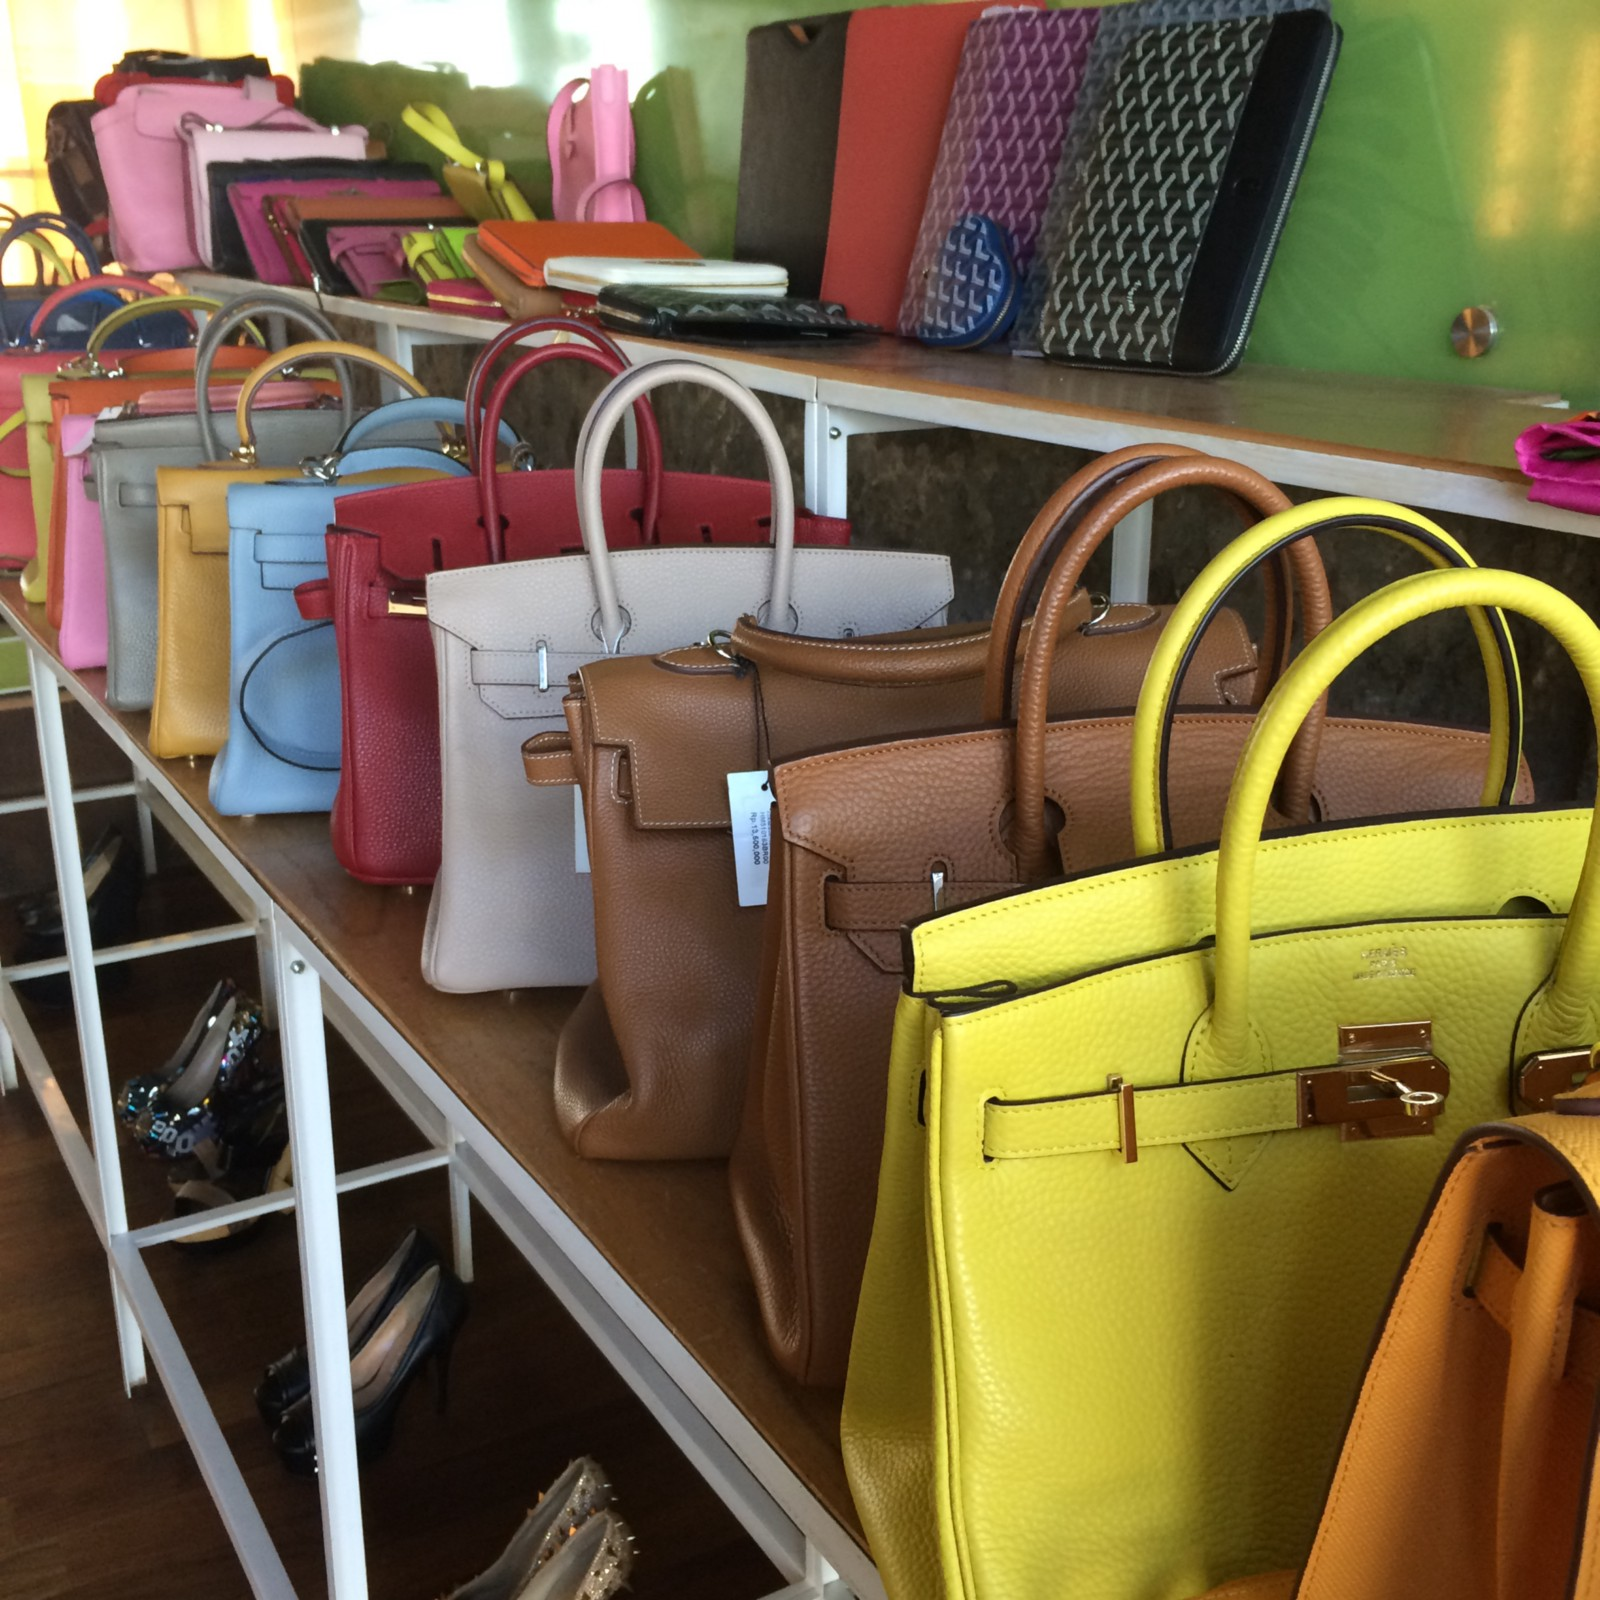 287e1bcb4c3 The Truth About Counterfeit Luxury Handbags – Becca Risa Luna – Medium